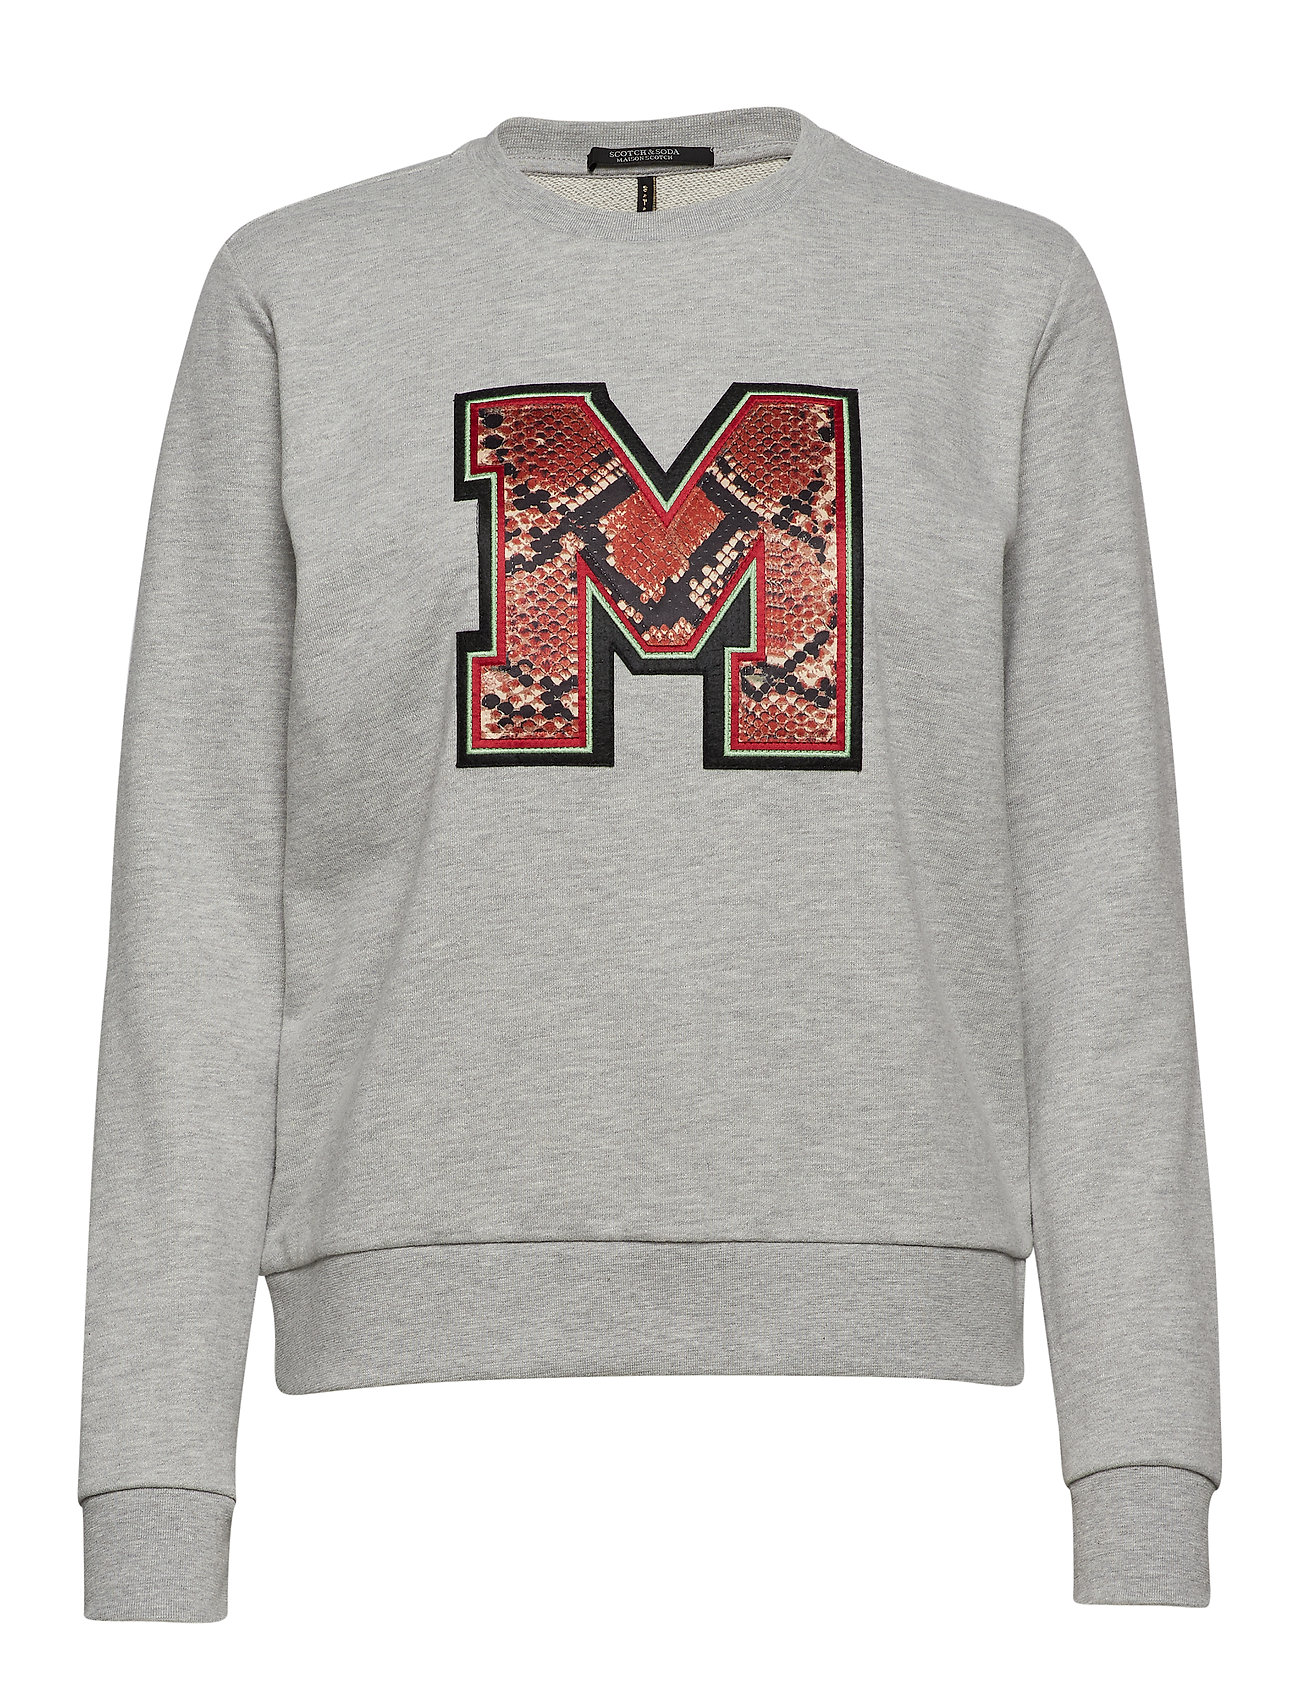 Scotch & Soda Crewneck sweat with badge - GREY MELANGE